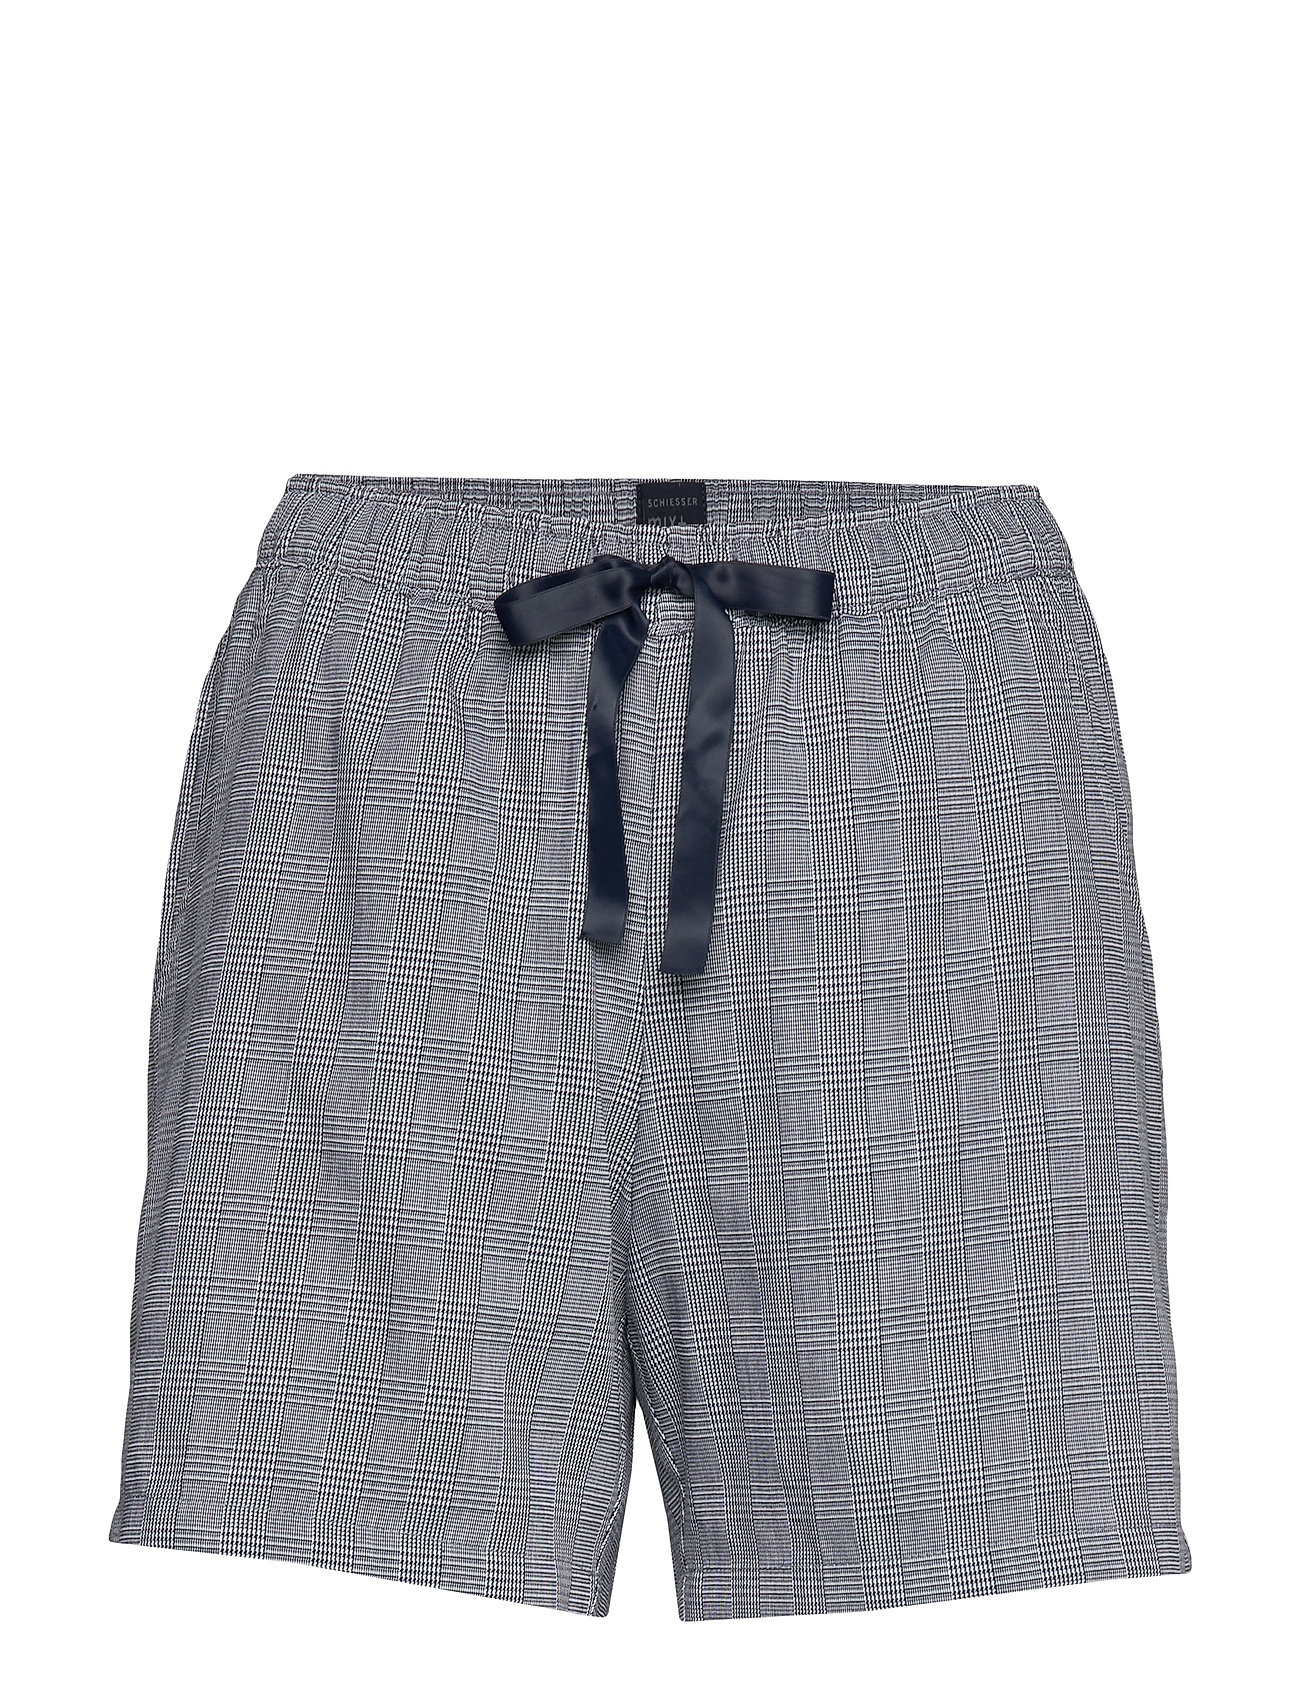 Schiesser Shorts - NIGHTBLUE